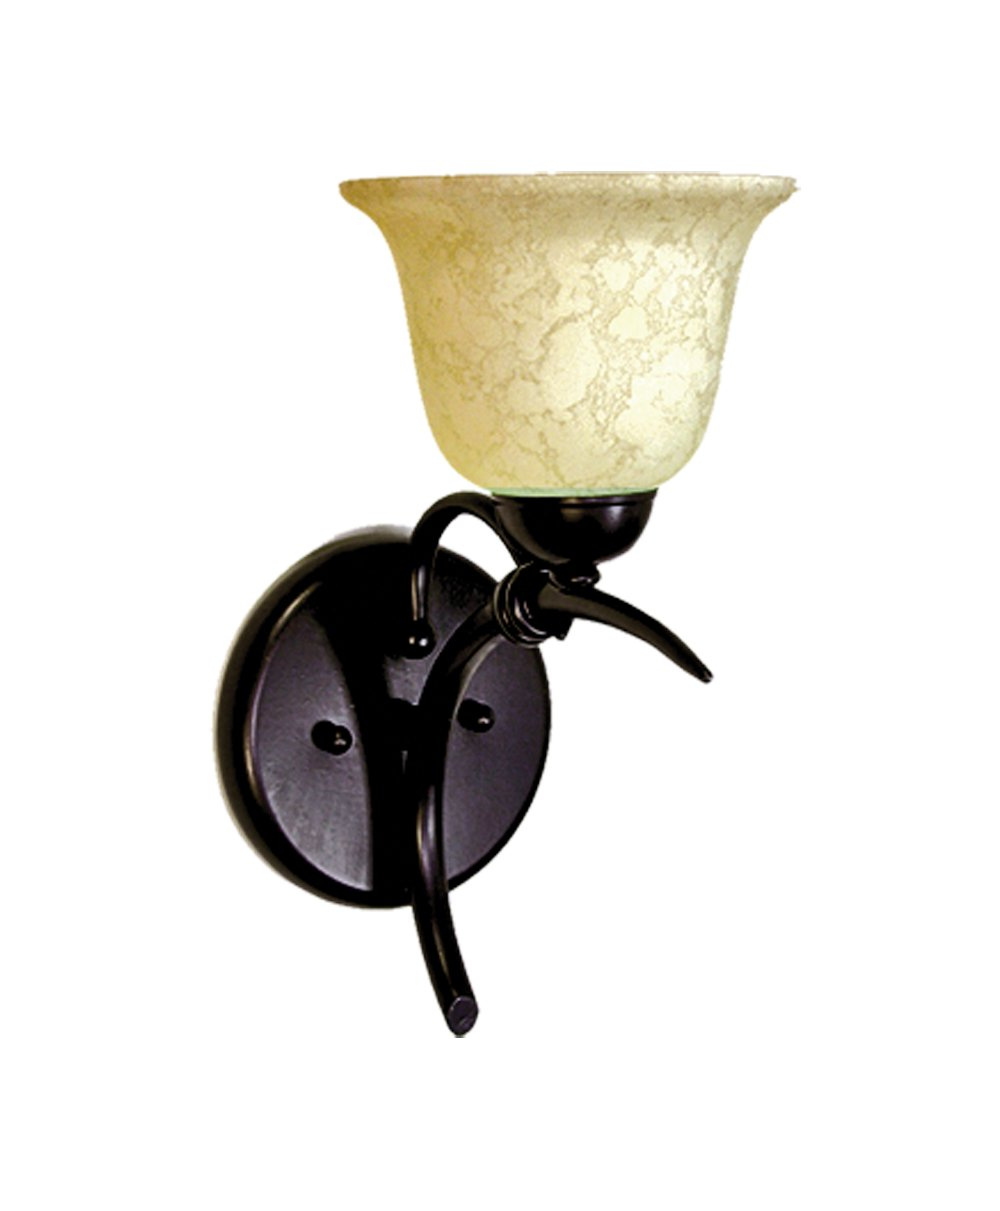 Marquis Lighting 2711-170-GB Wall Sconce with Beige Scavo Glass Shades Golden Bronze